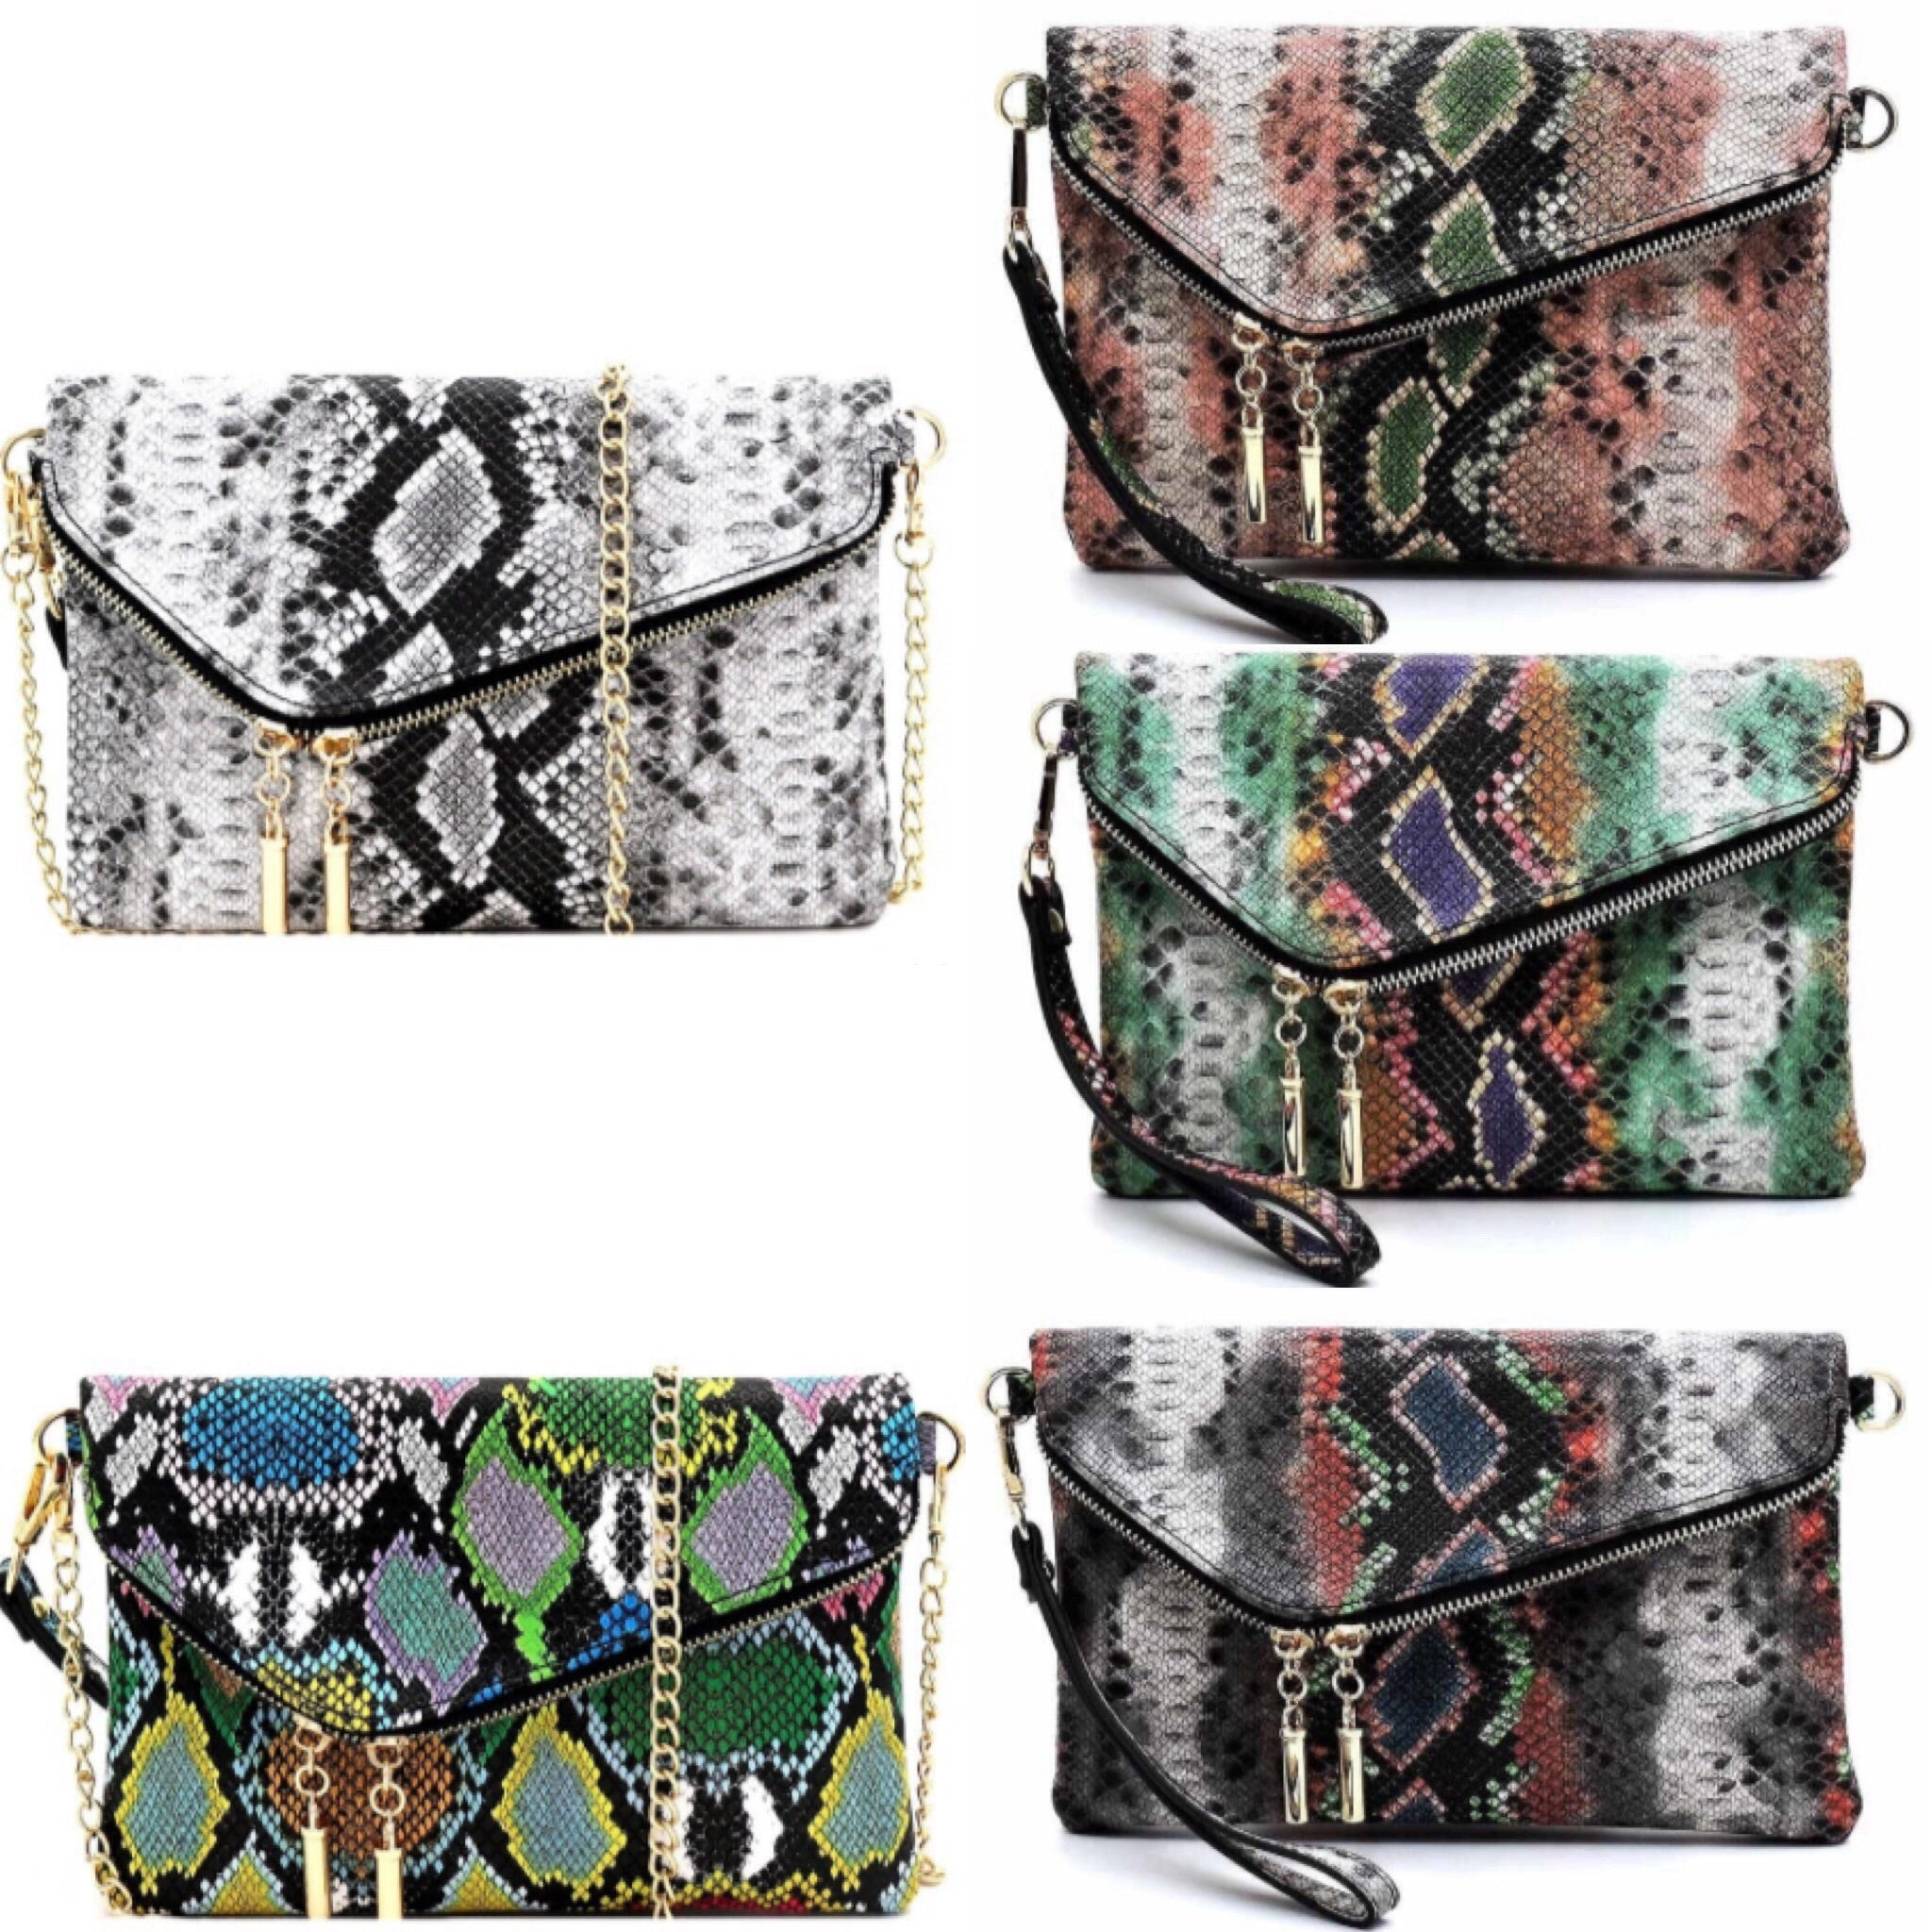 It's In The Bag Medium Python Clutch Cross-body Collection - TRUE.